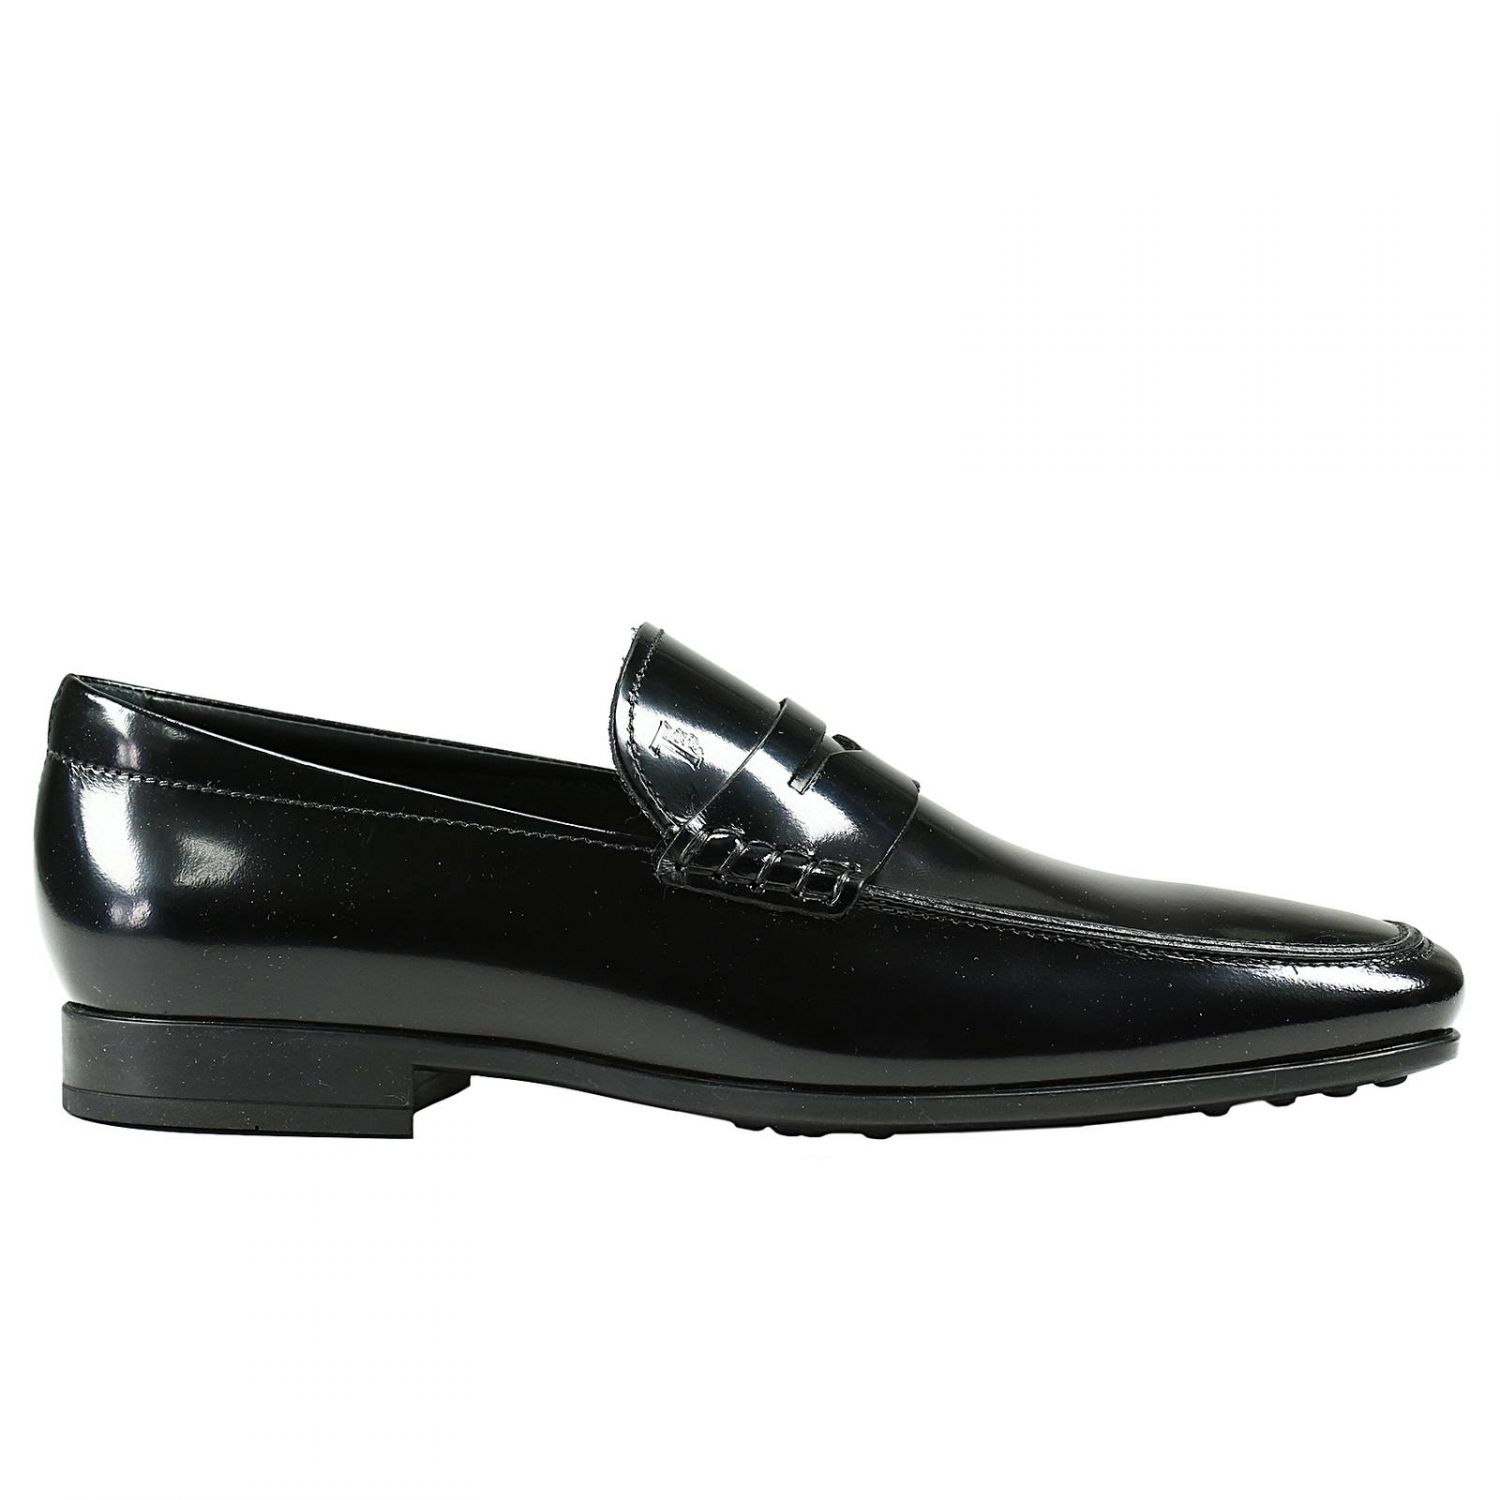 classic loafers - Black Tod's sRMhsX4cKx